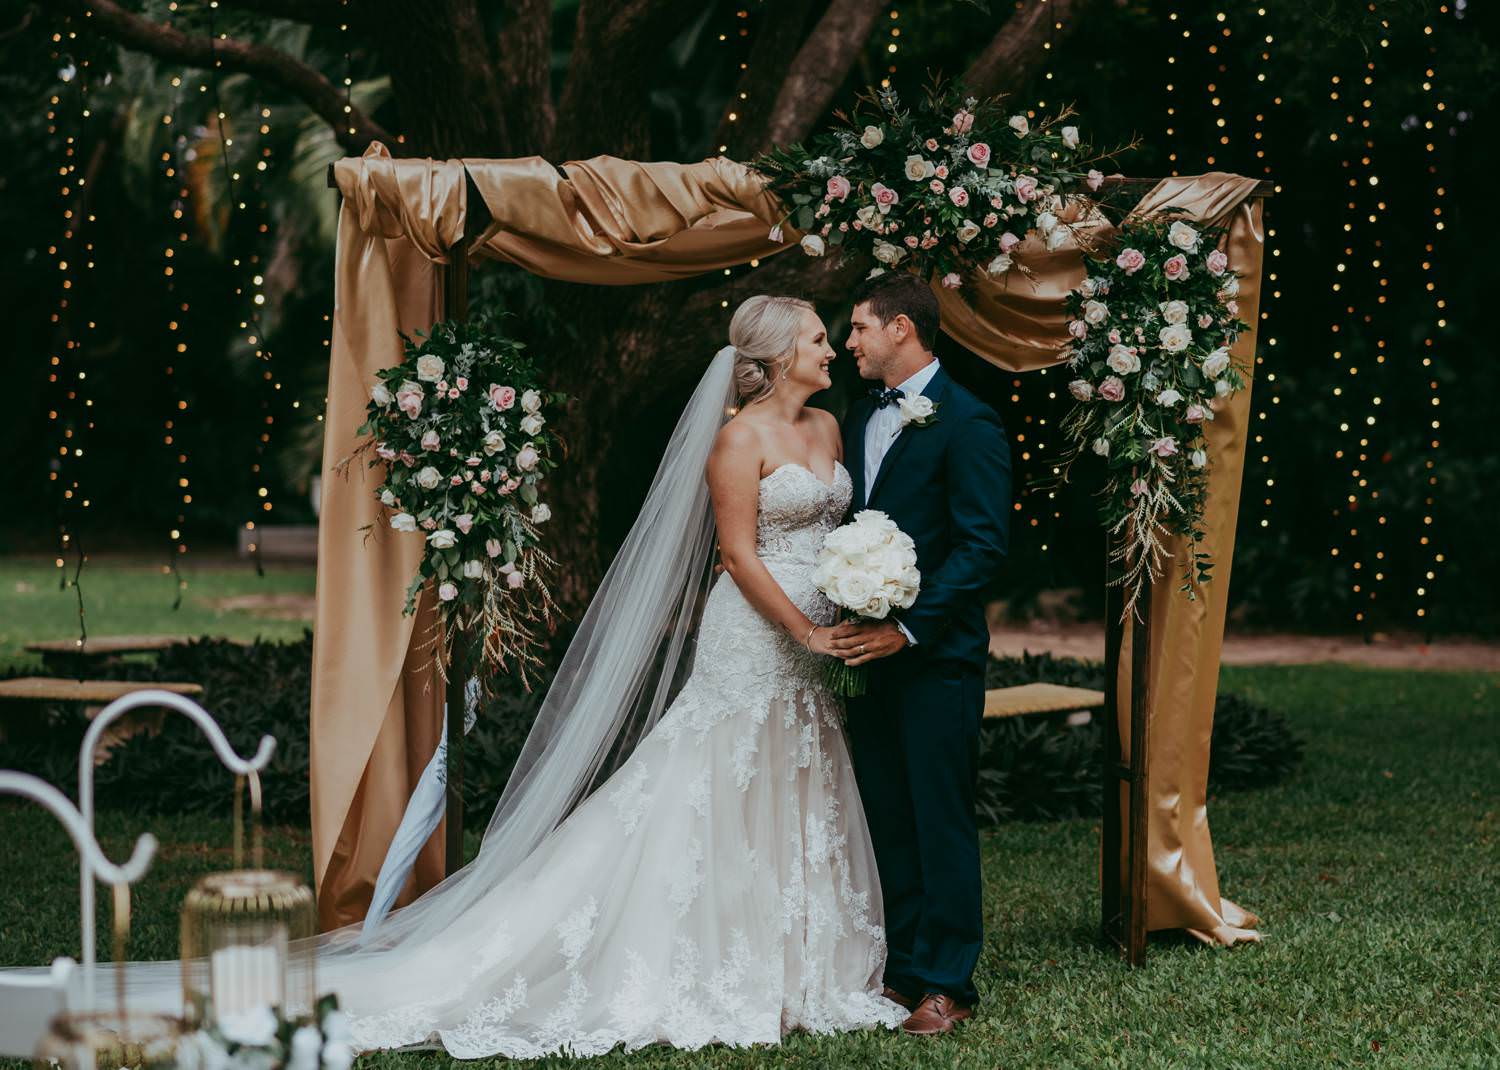 Bride and Groom standing in front of a arch with flower garlands and gold fabric